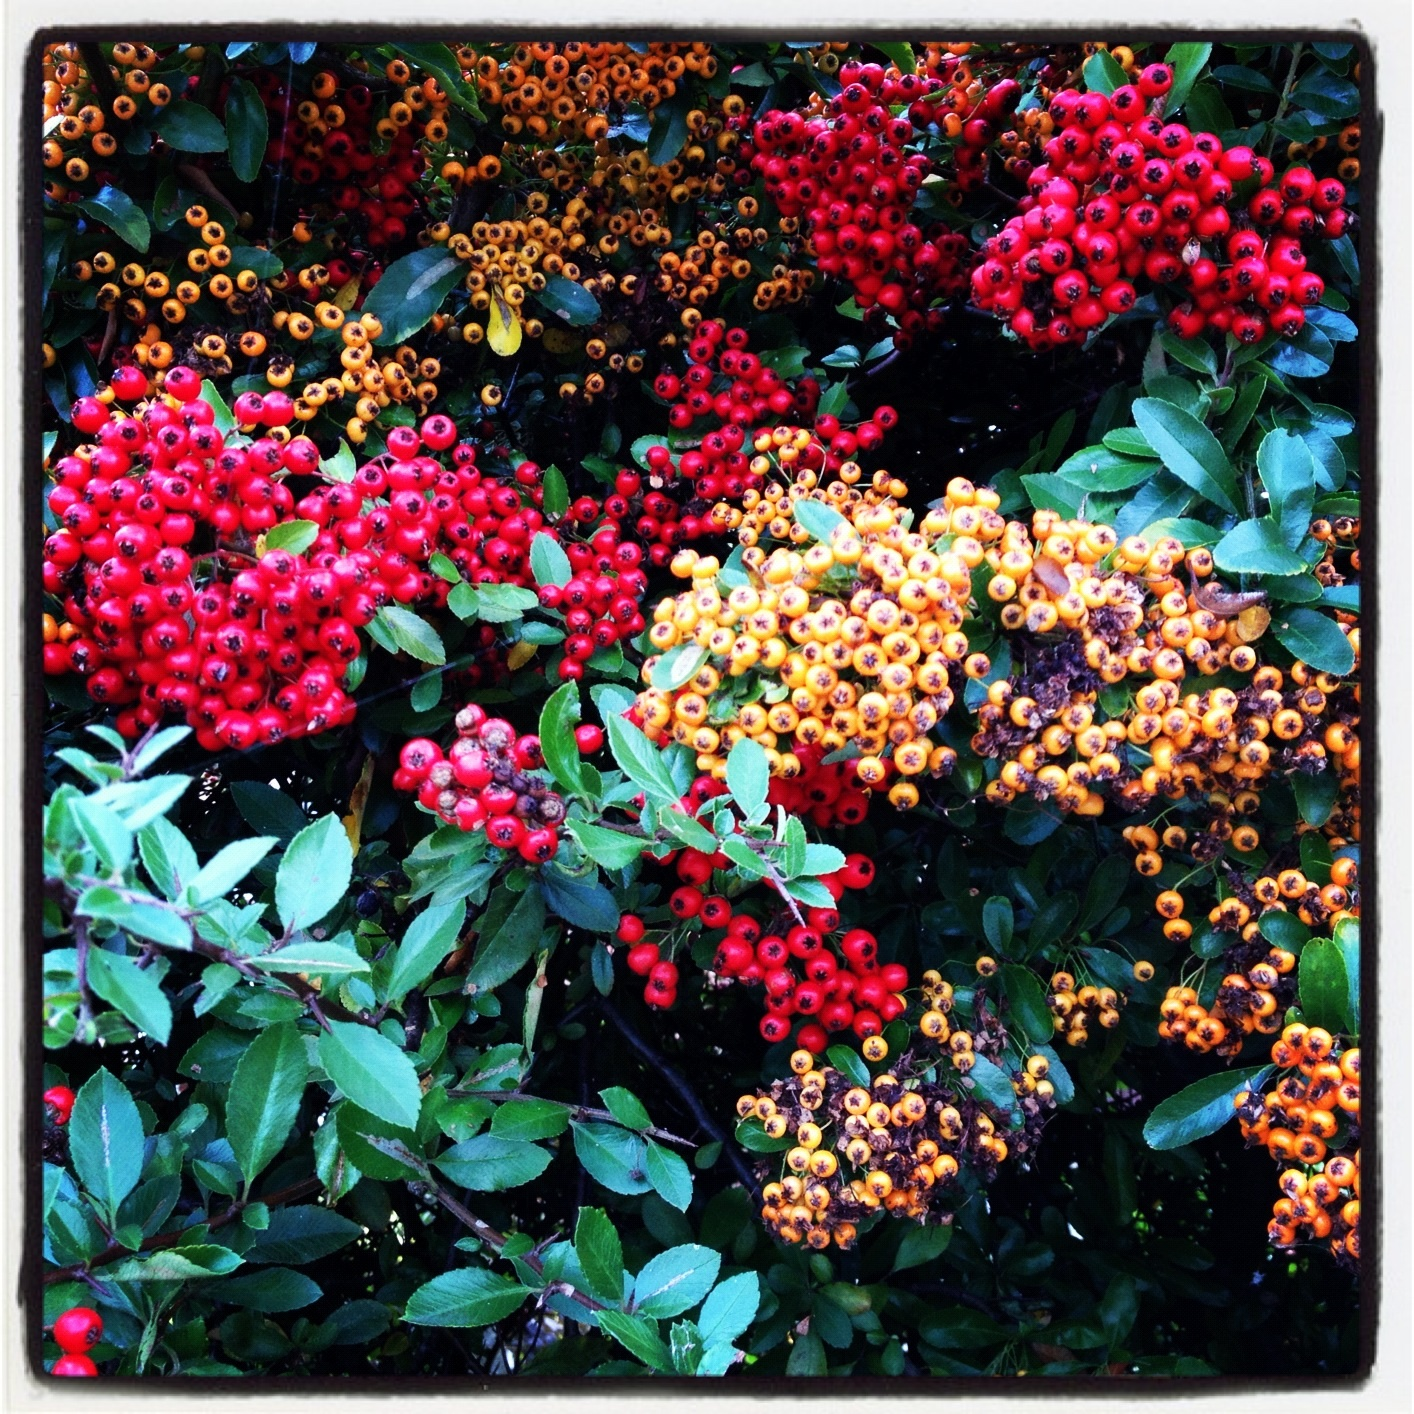 autumn berries